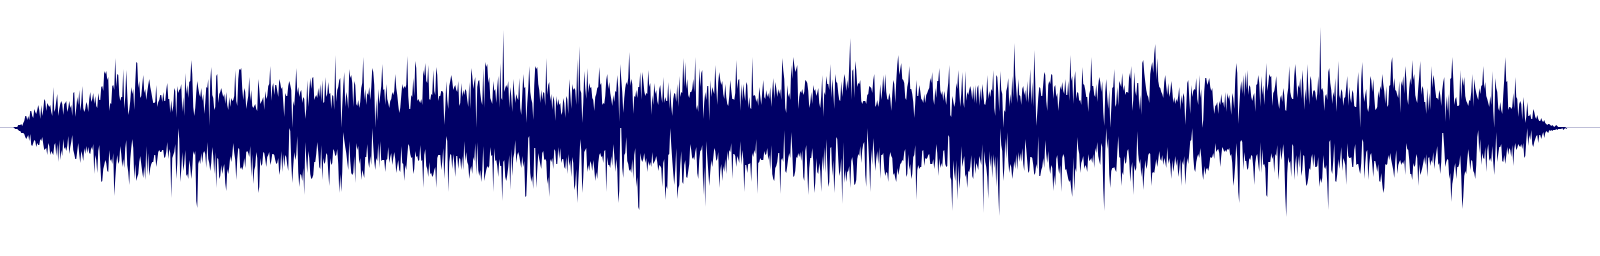 waveform of track #101293